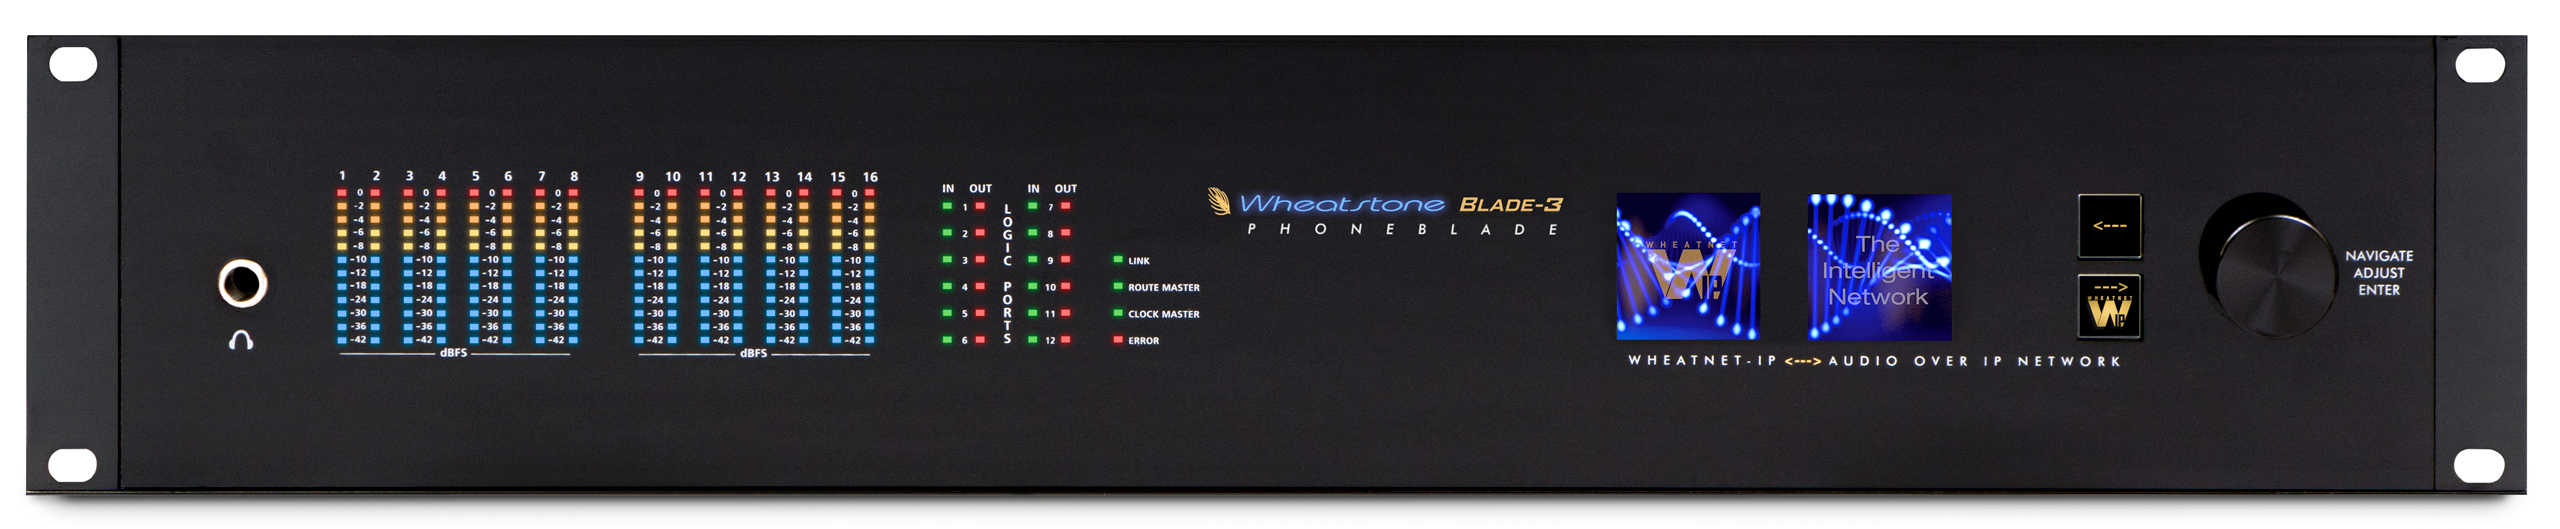 PHONEBLADE BOX HEADONFlat